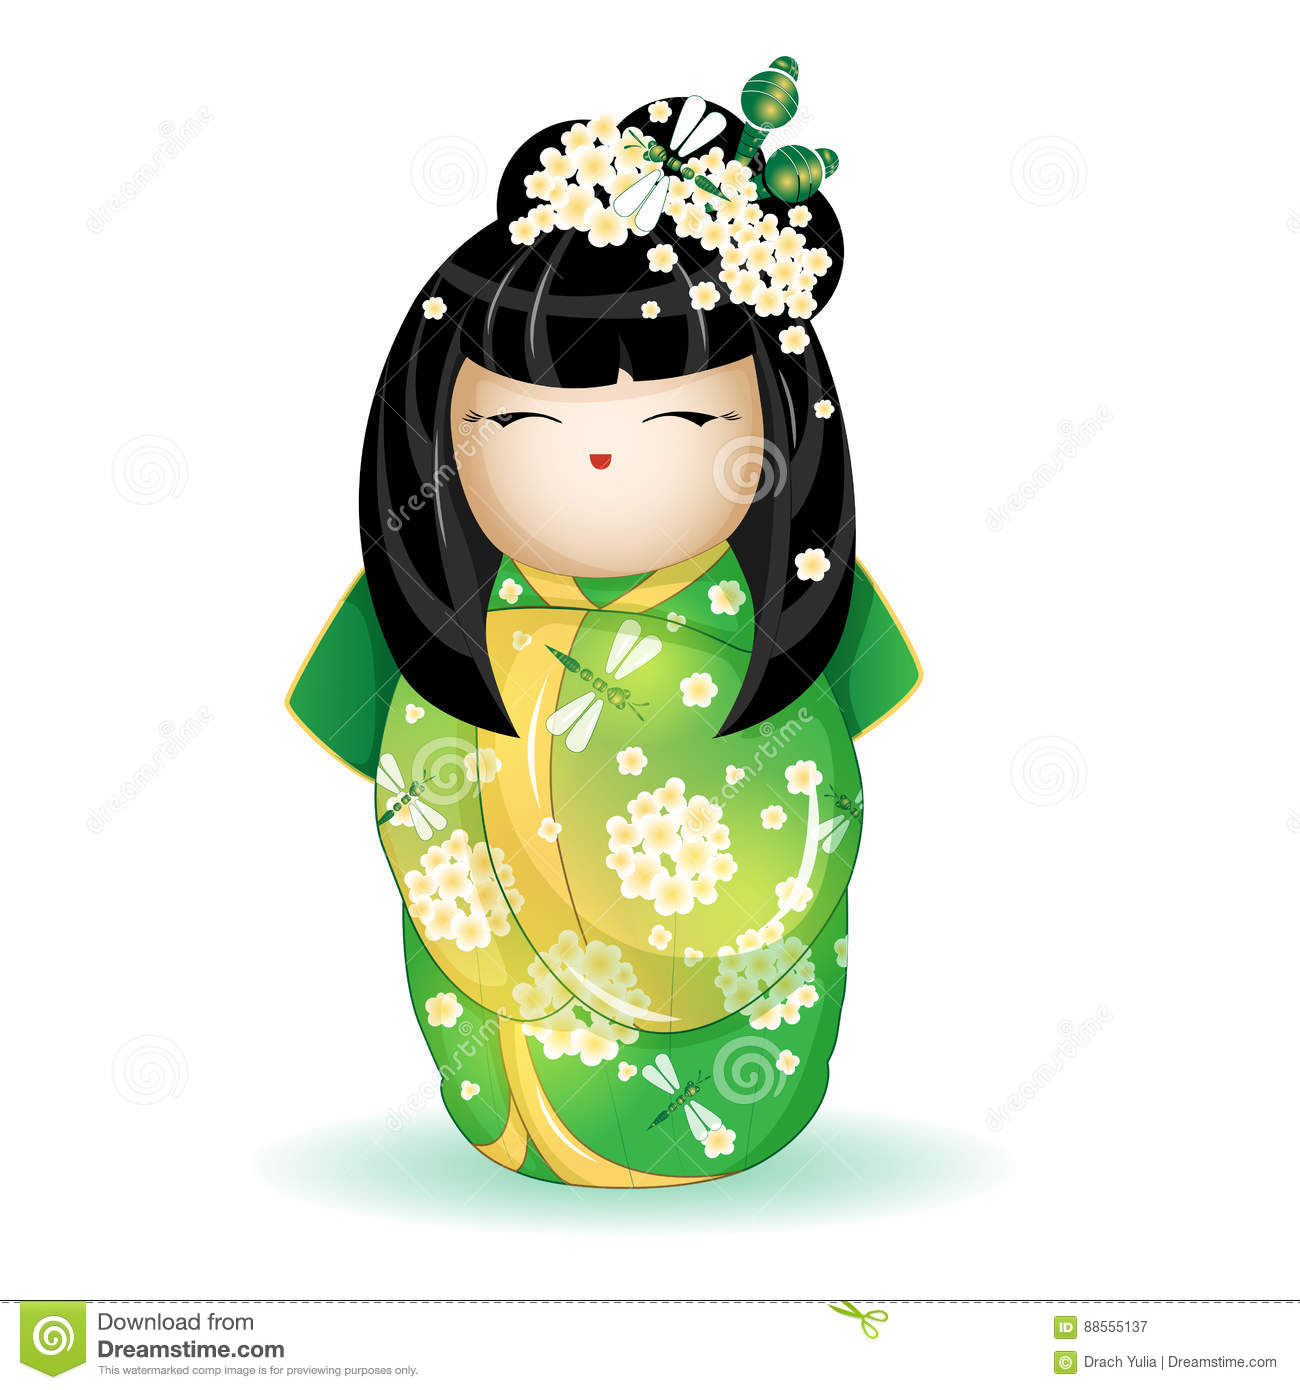 Download Japan National Kokeshi Doll In A Green Kimono With Pattern Of White Flowers And